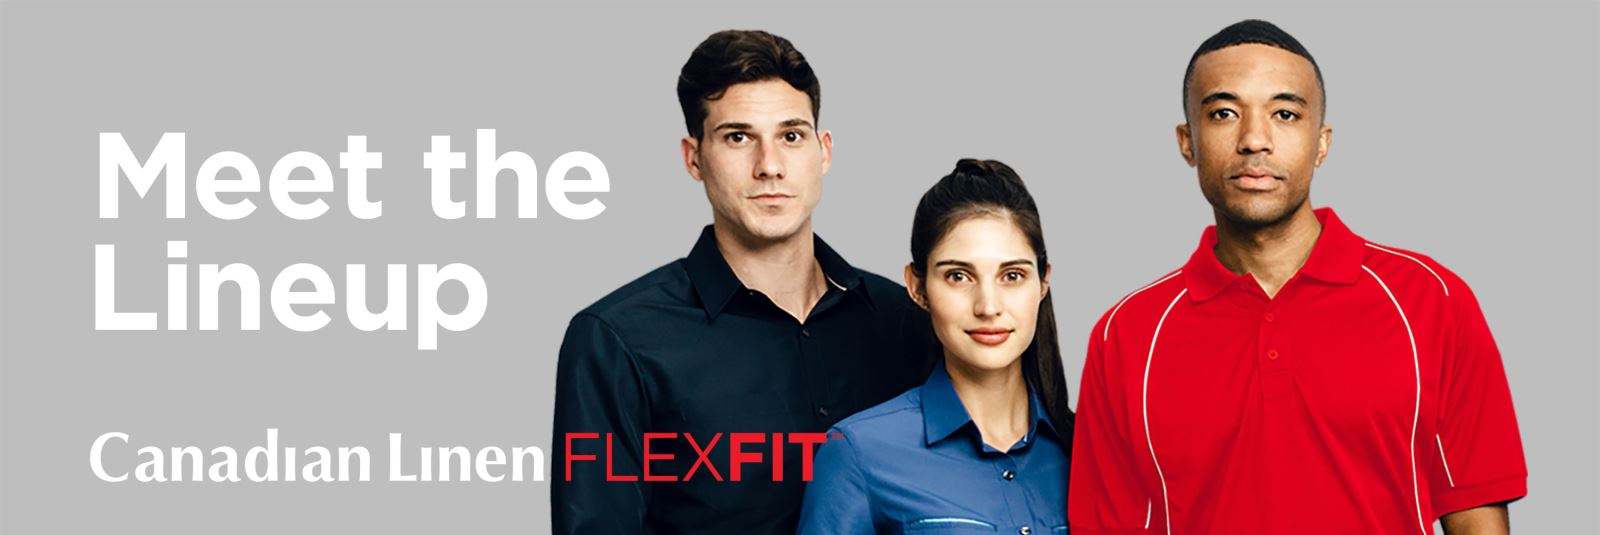 Meet the Lineup three models wearing flexFit